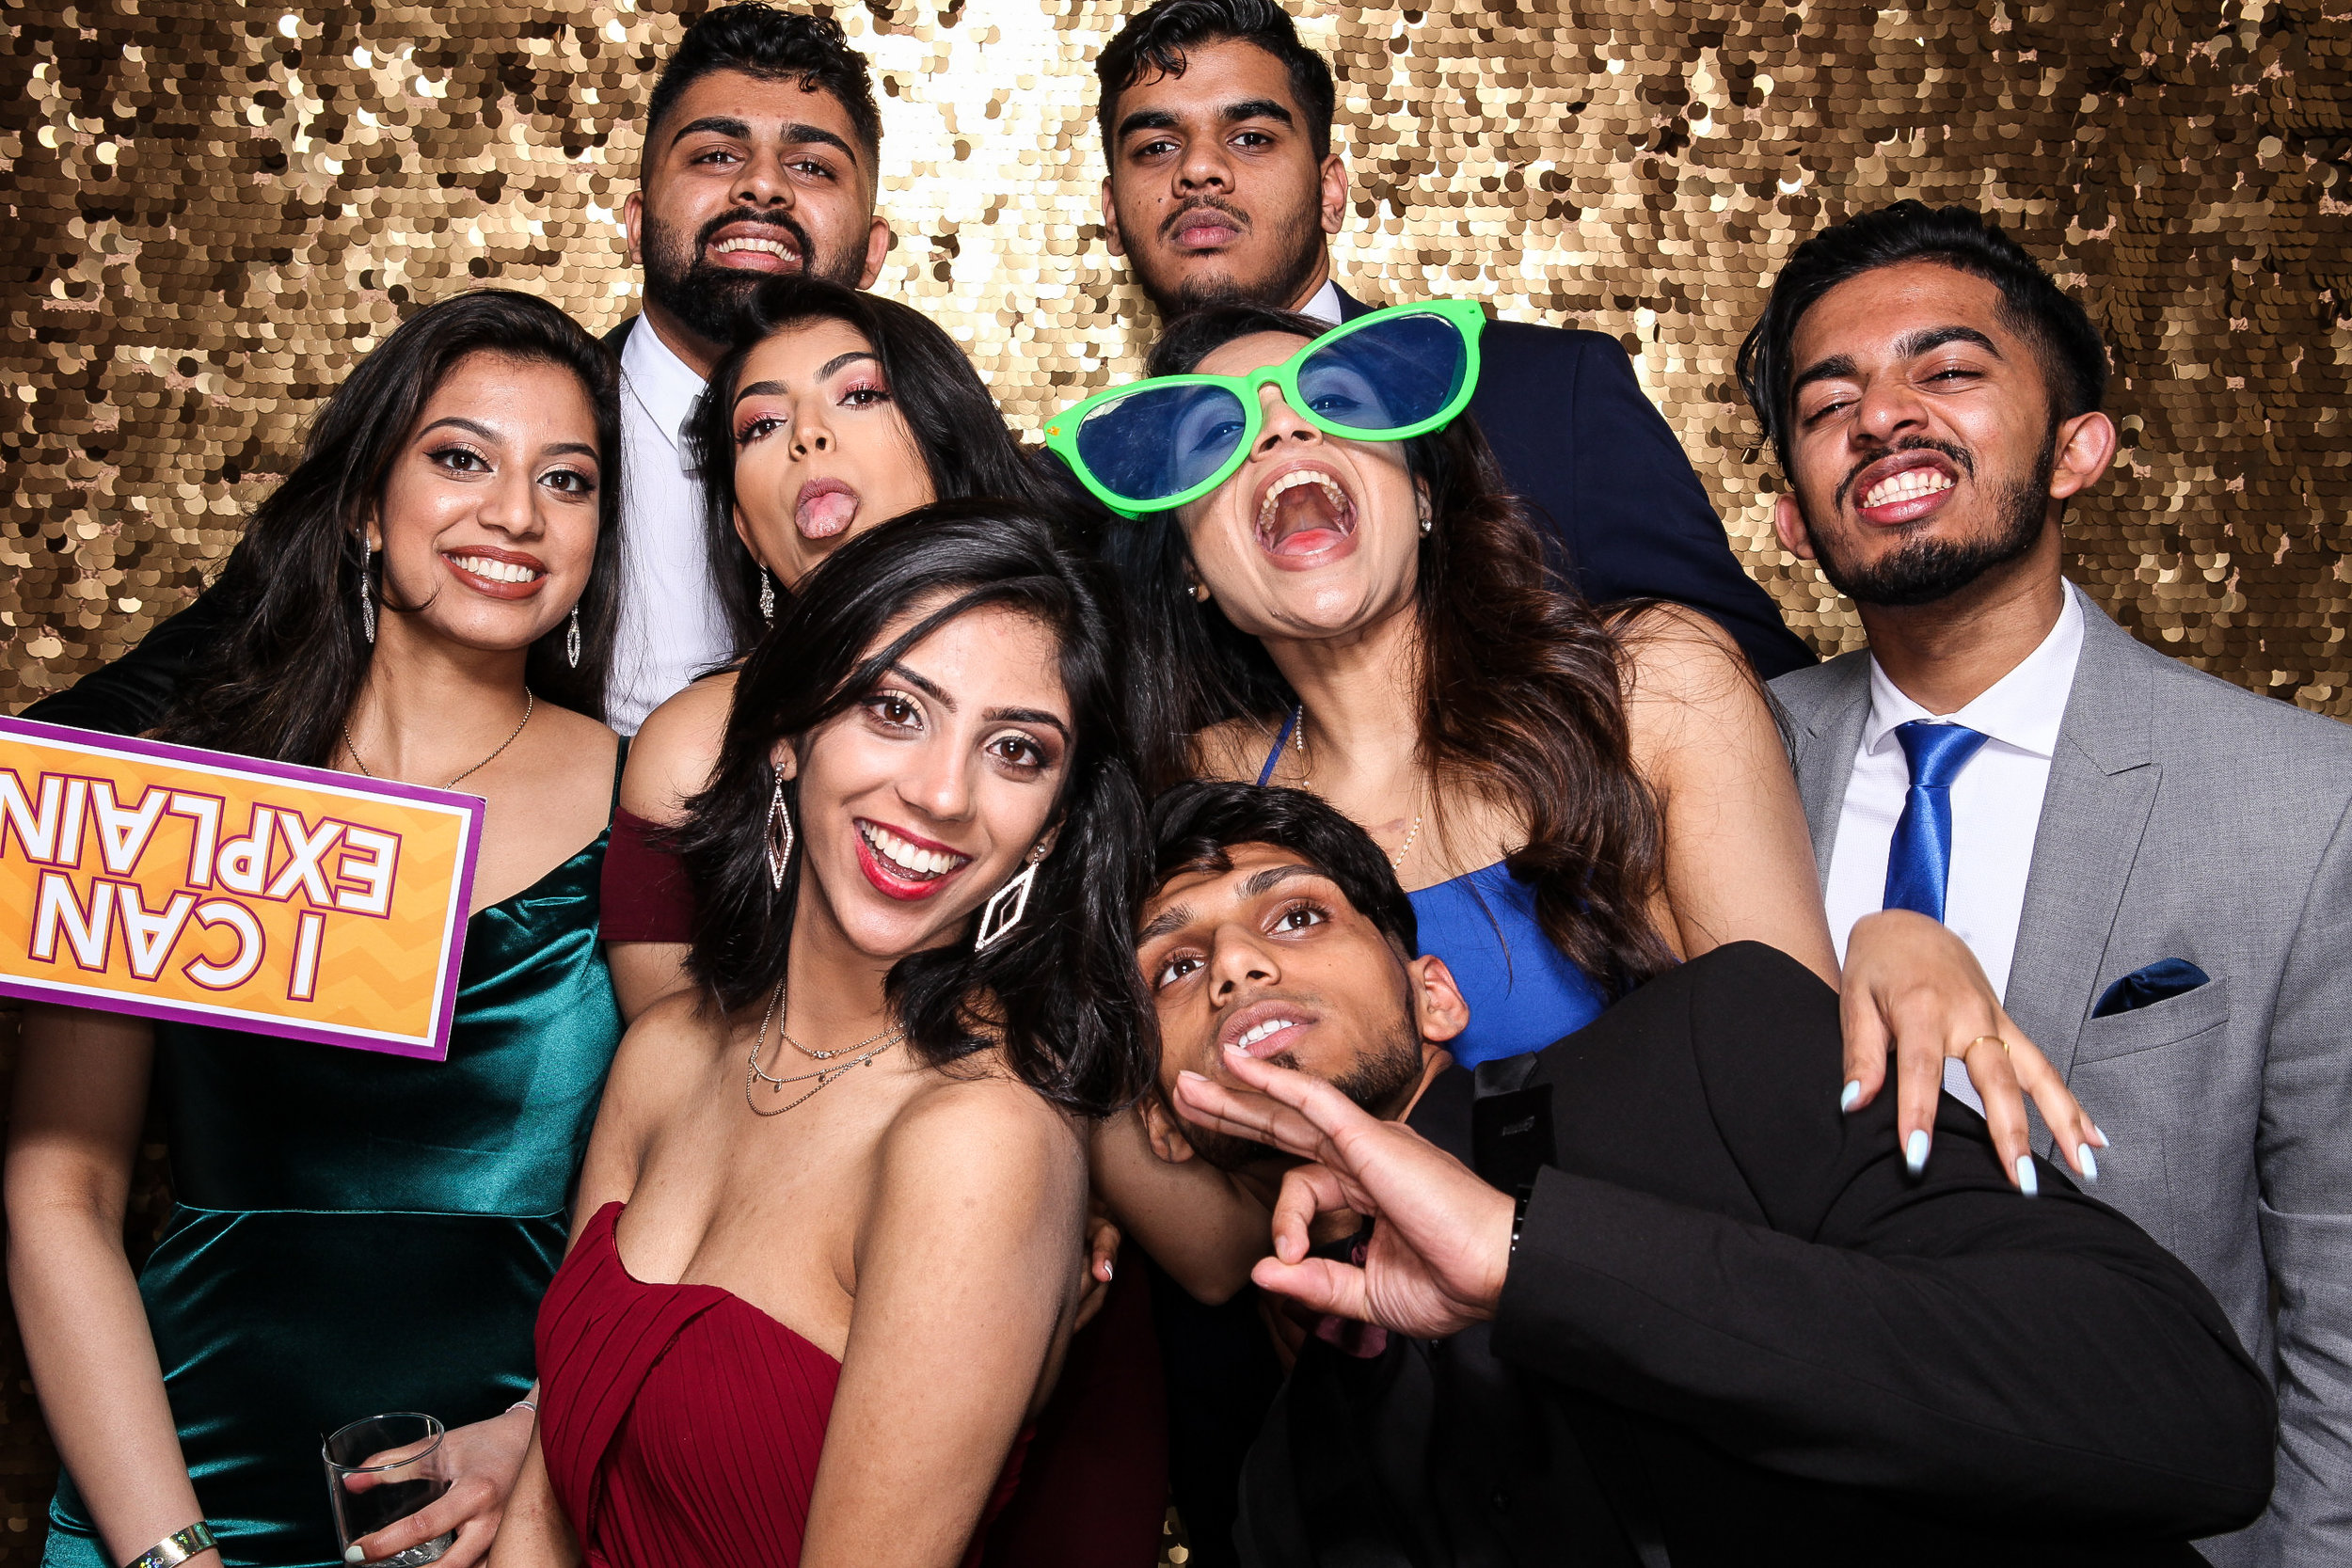 20190503_Adelphi_Senior_Formal-261.jpg